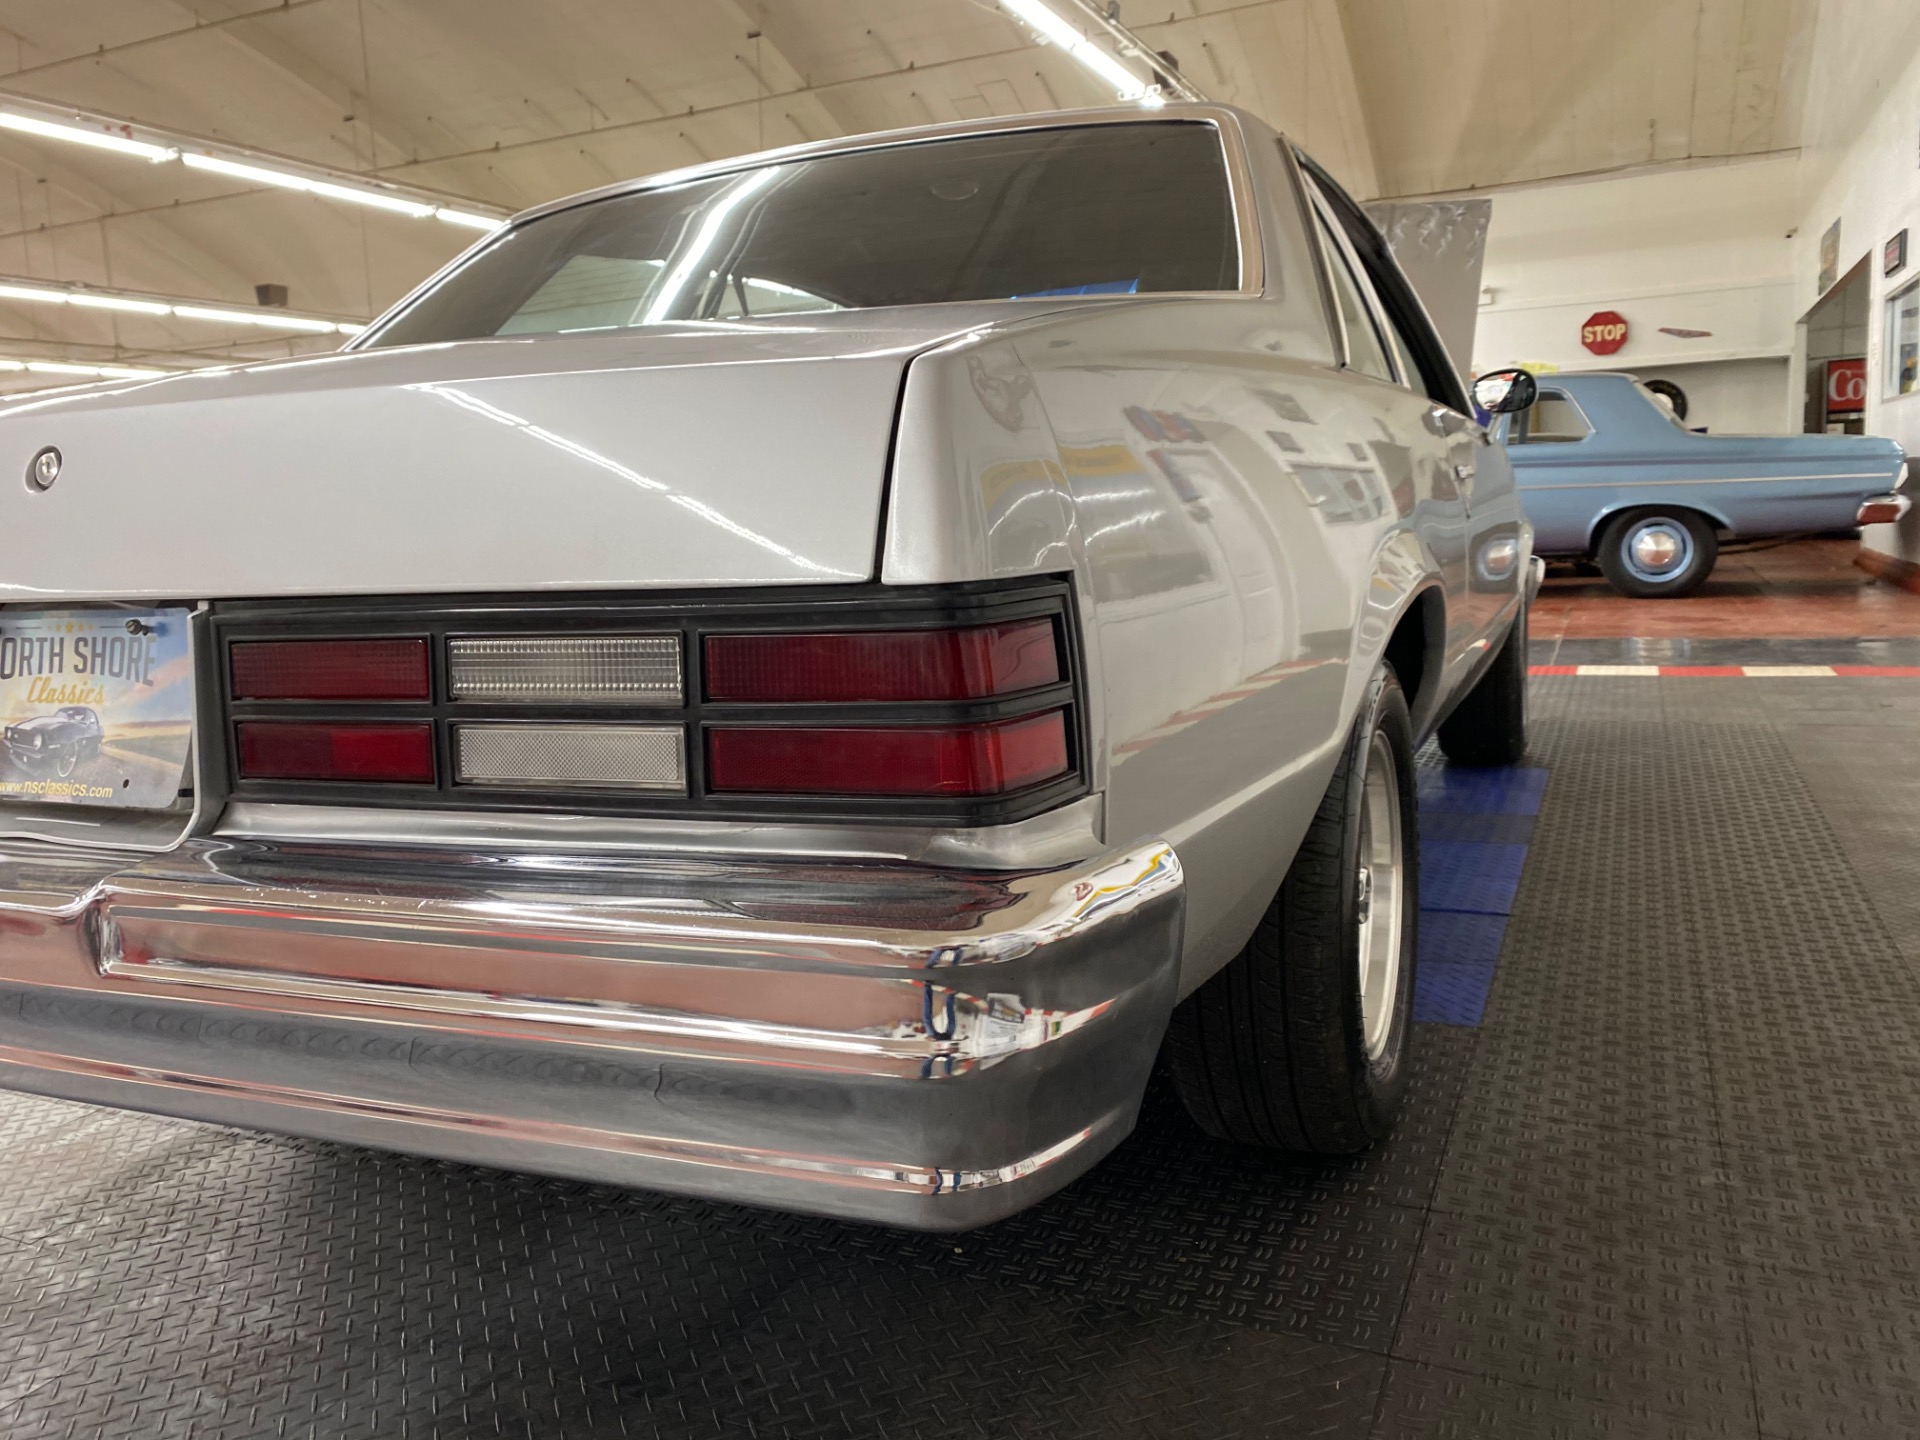 Used 1980 Chevrolet Malibu - CUSTOM PAINT - BUILT 355 ENGINE - DRIVE ANYWHERE - SEE VIDEO | Mundelein, IL